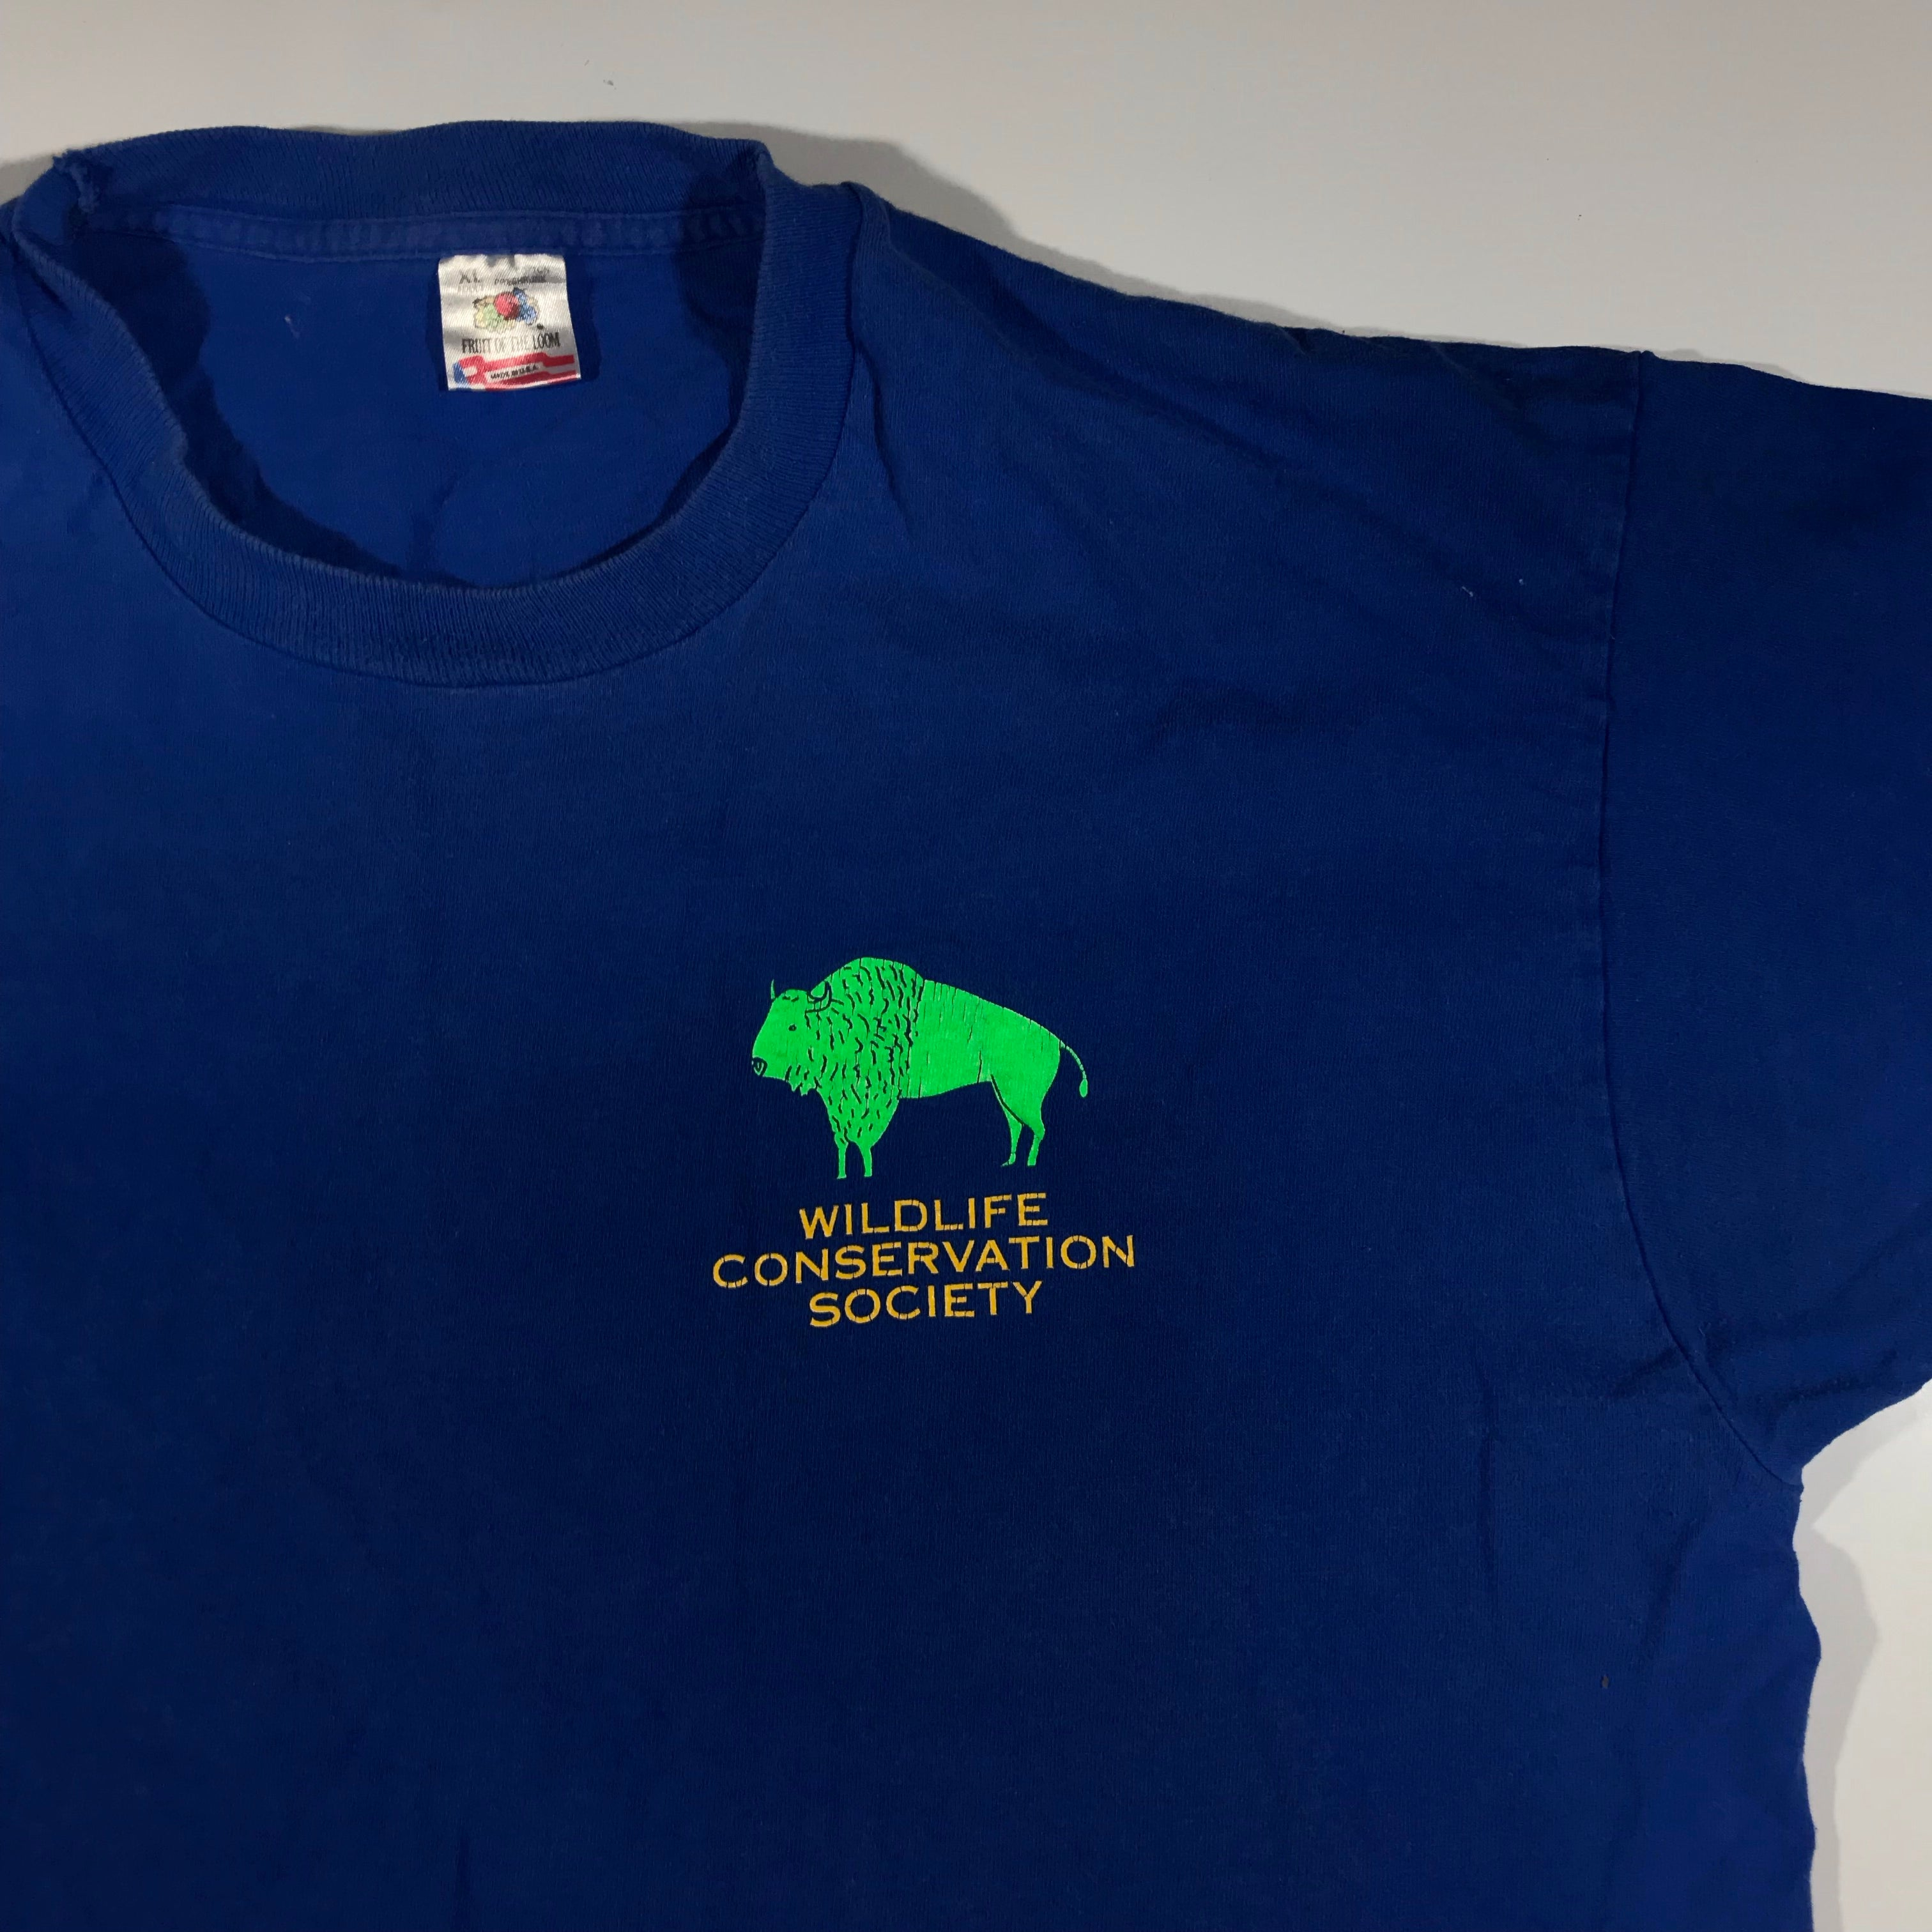 90s Wildlife conservation society tee. XL